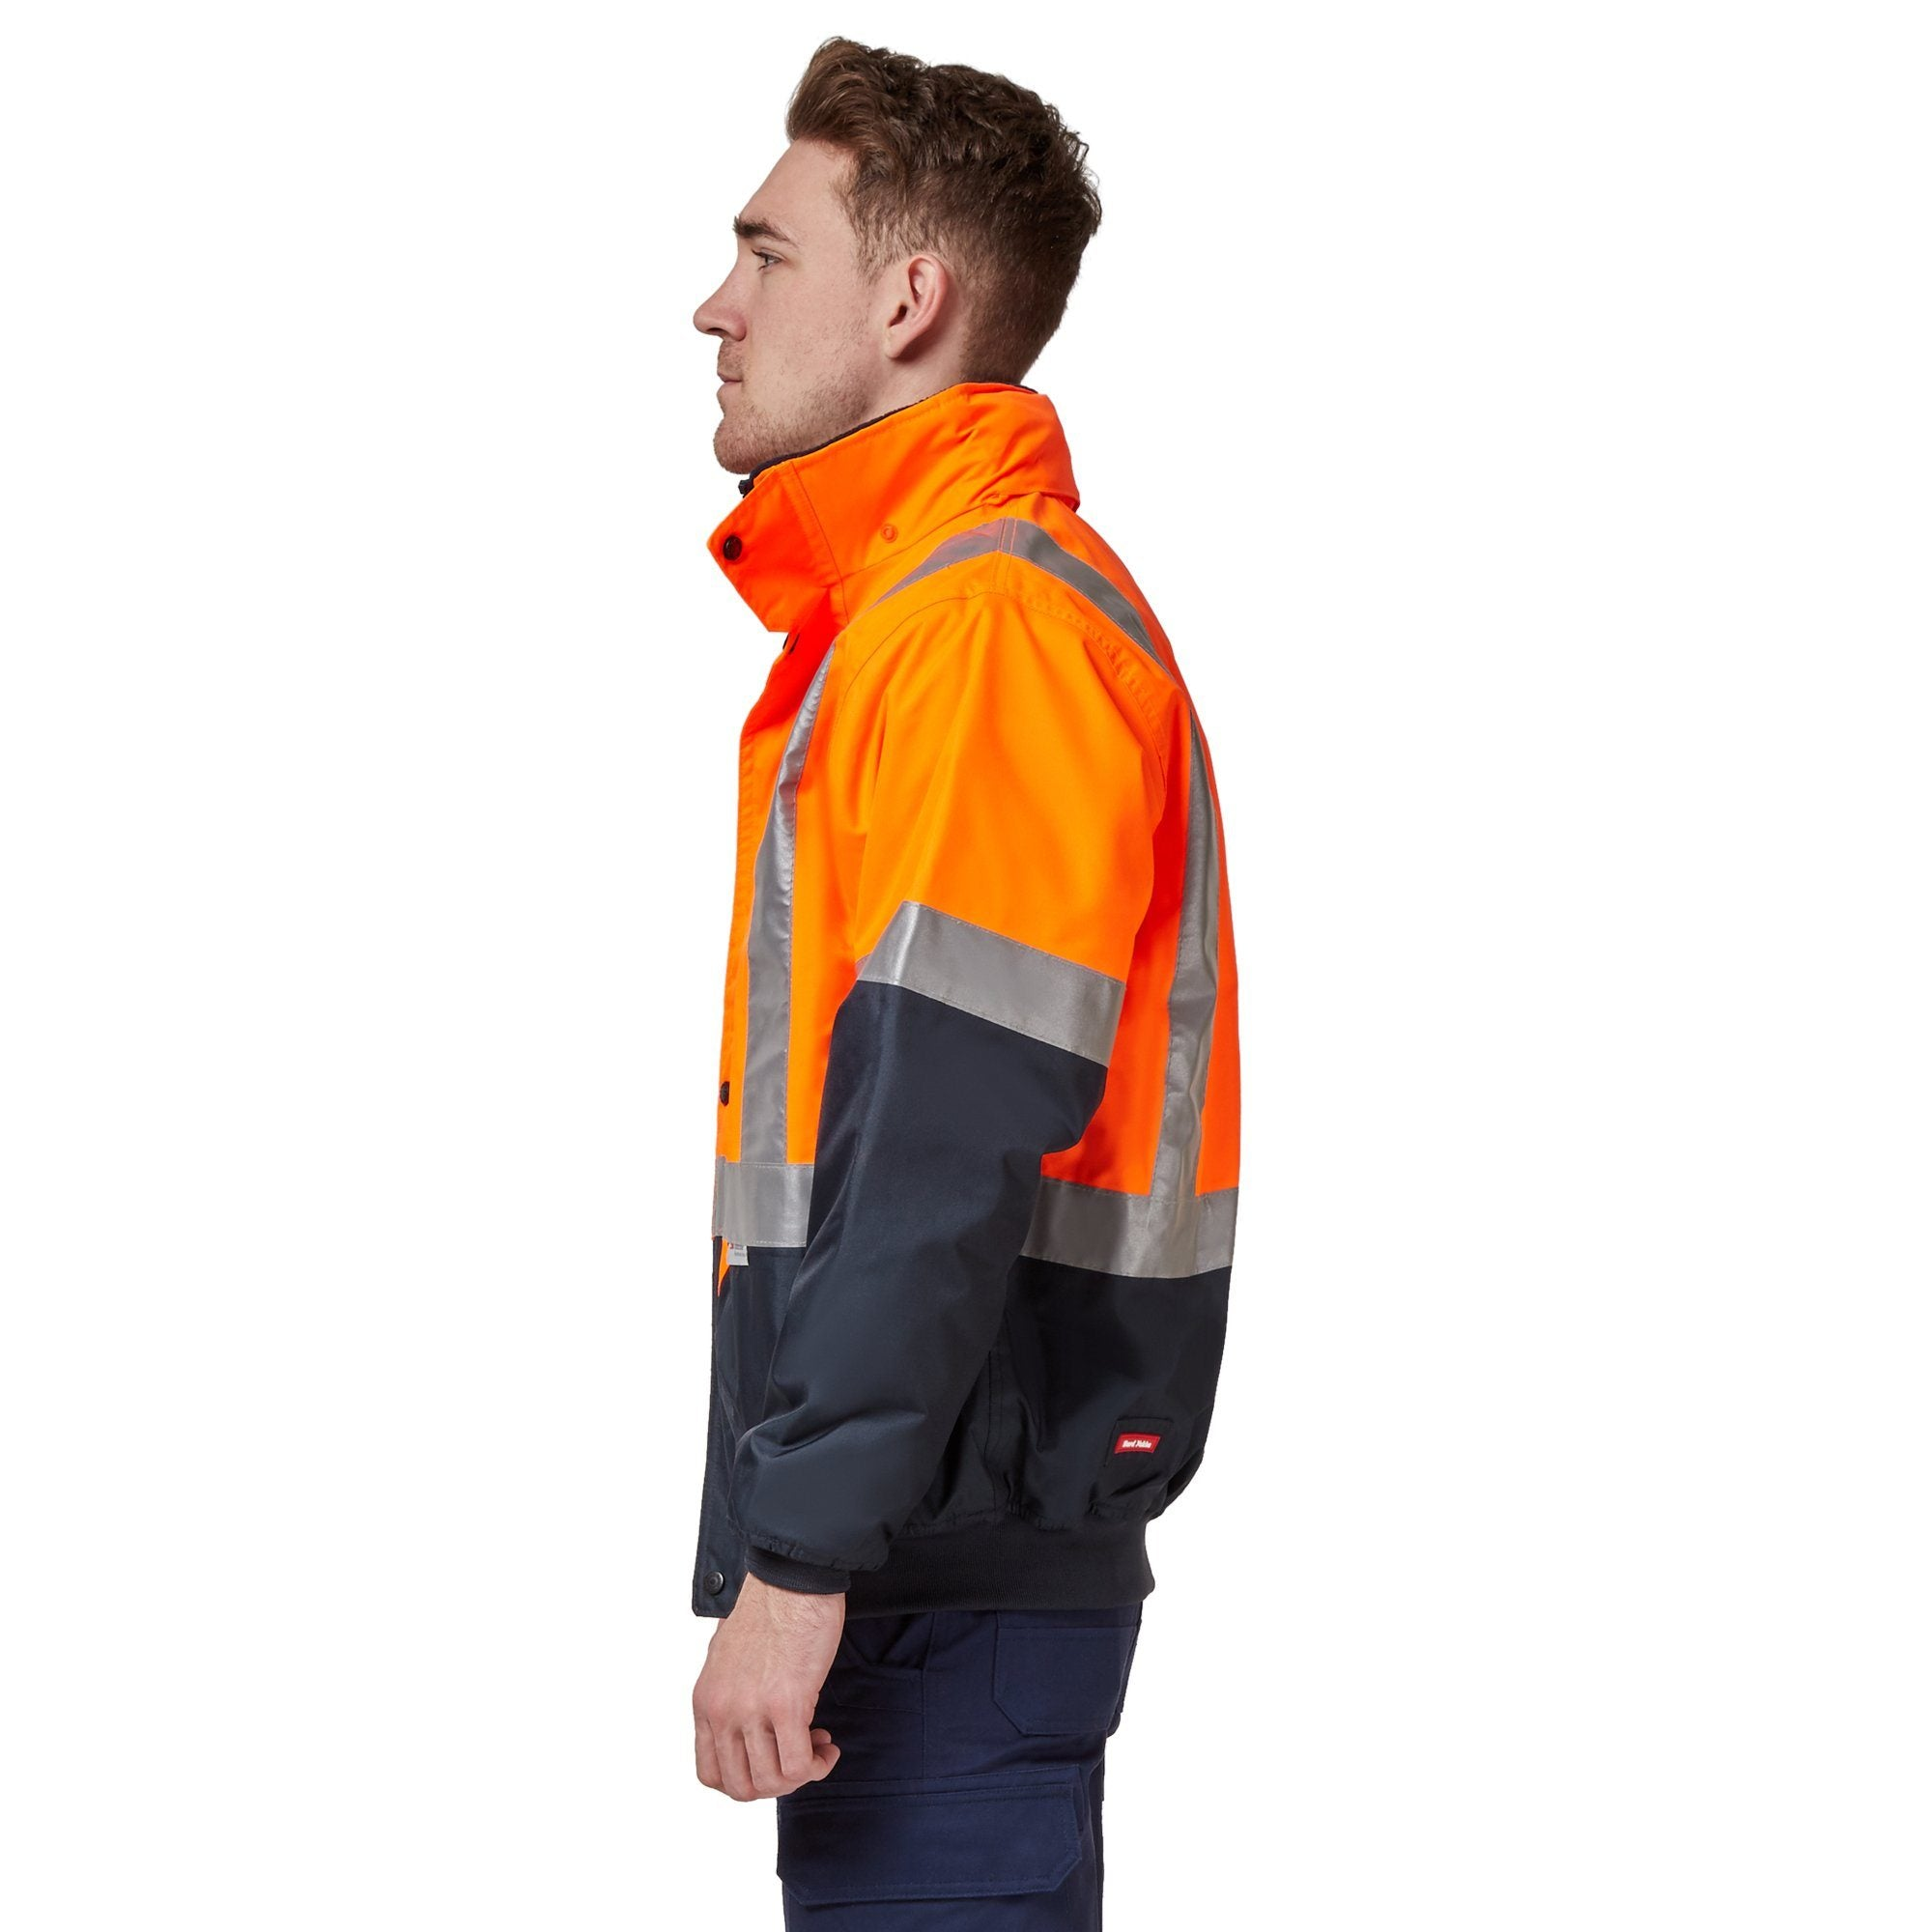 Hard Yakka Two Tone Quilted Flying Jacket - Orange/Navy Workwear Isbister & Co Wholesale